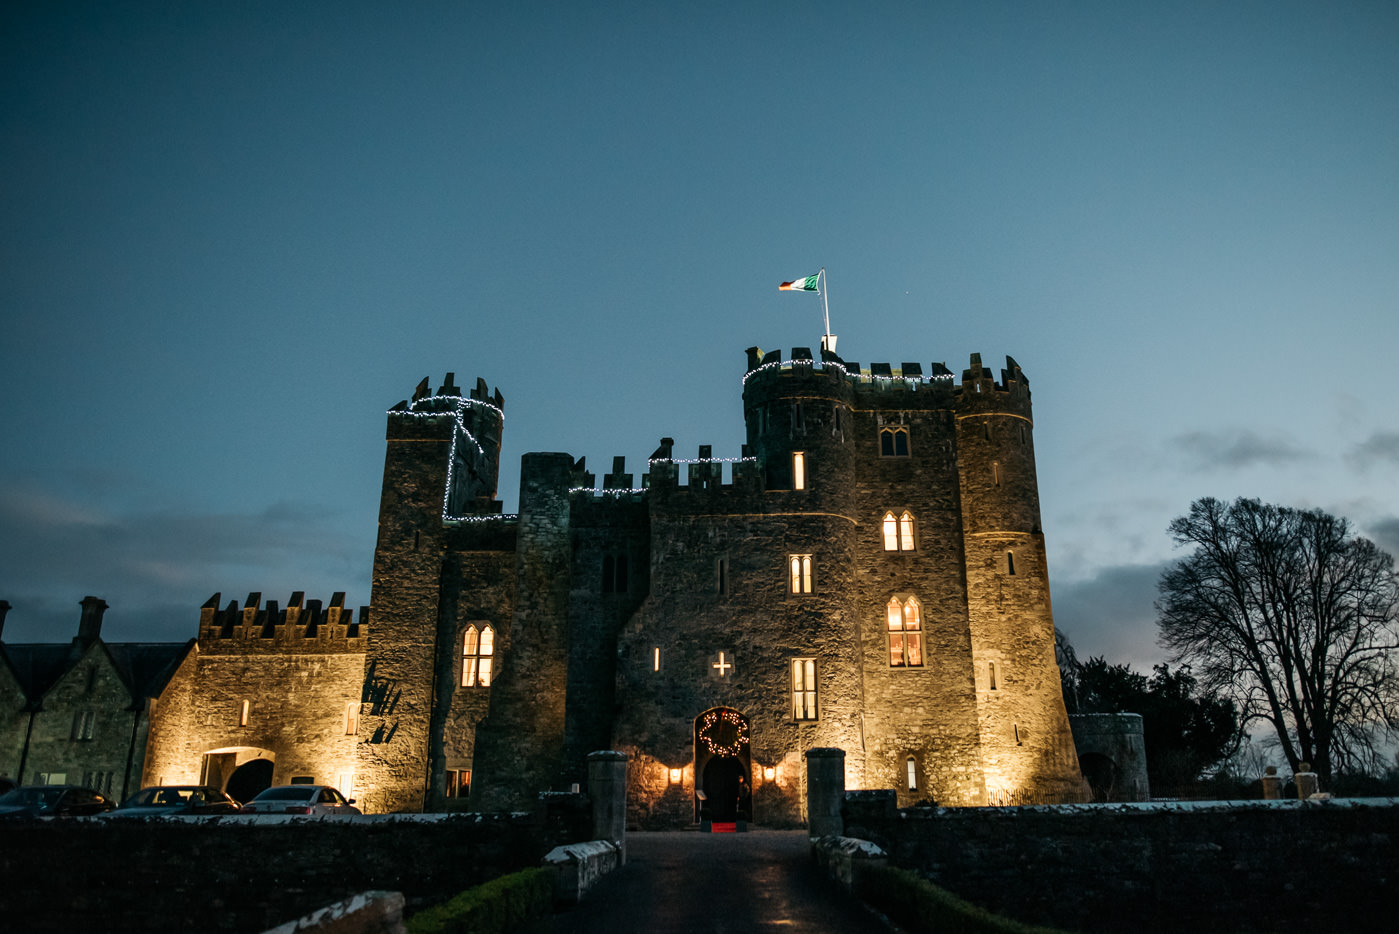 Winter weddings at Kilkea Castle